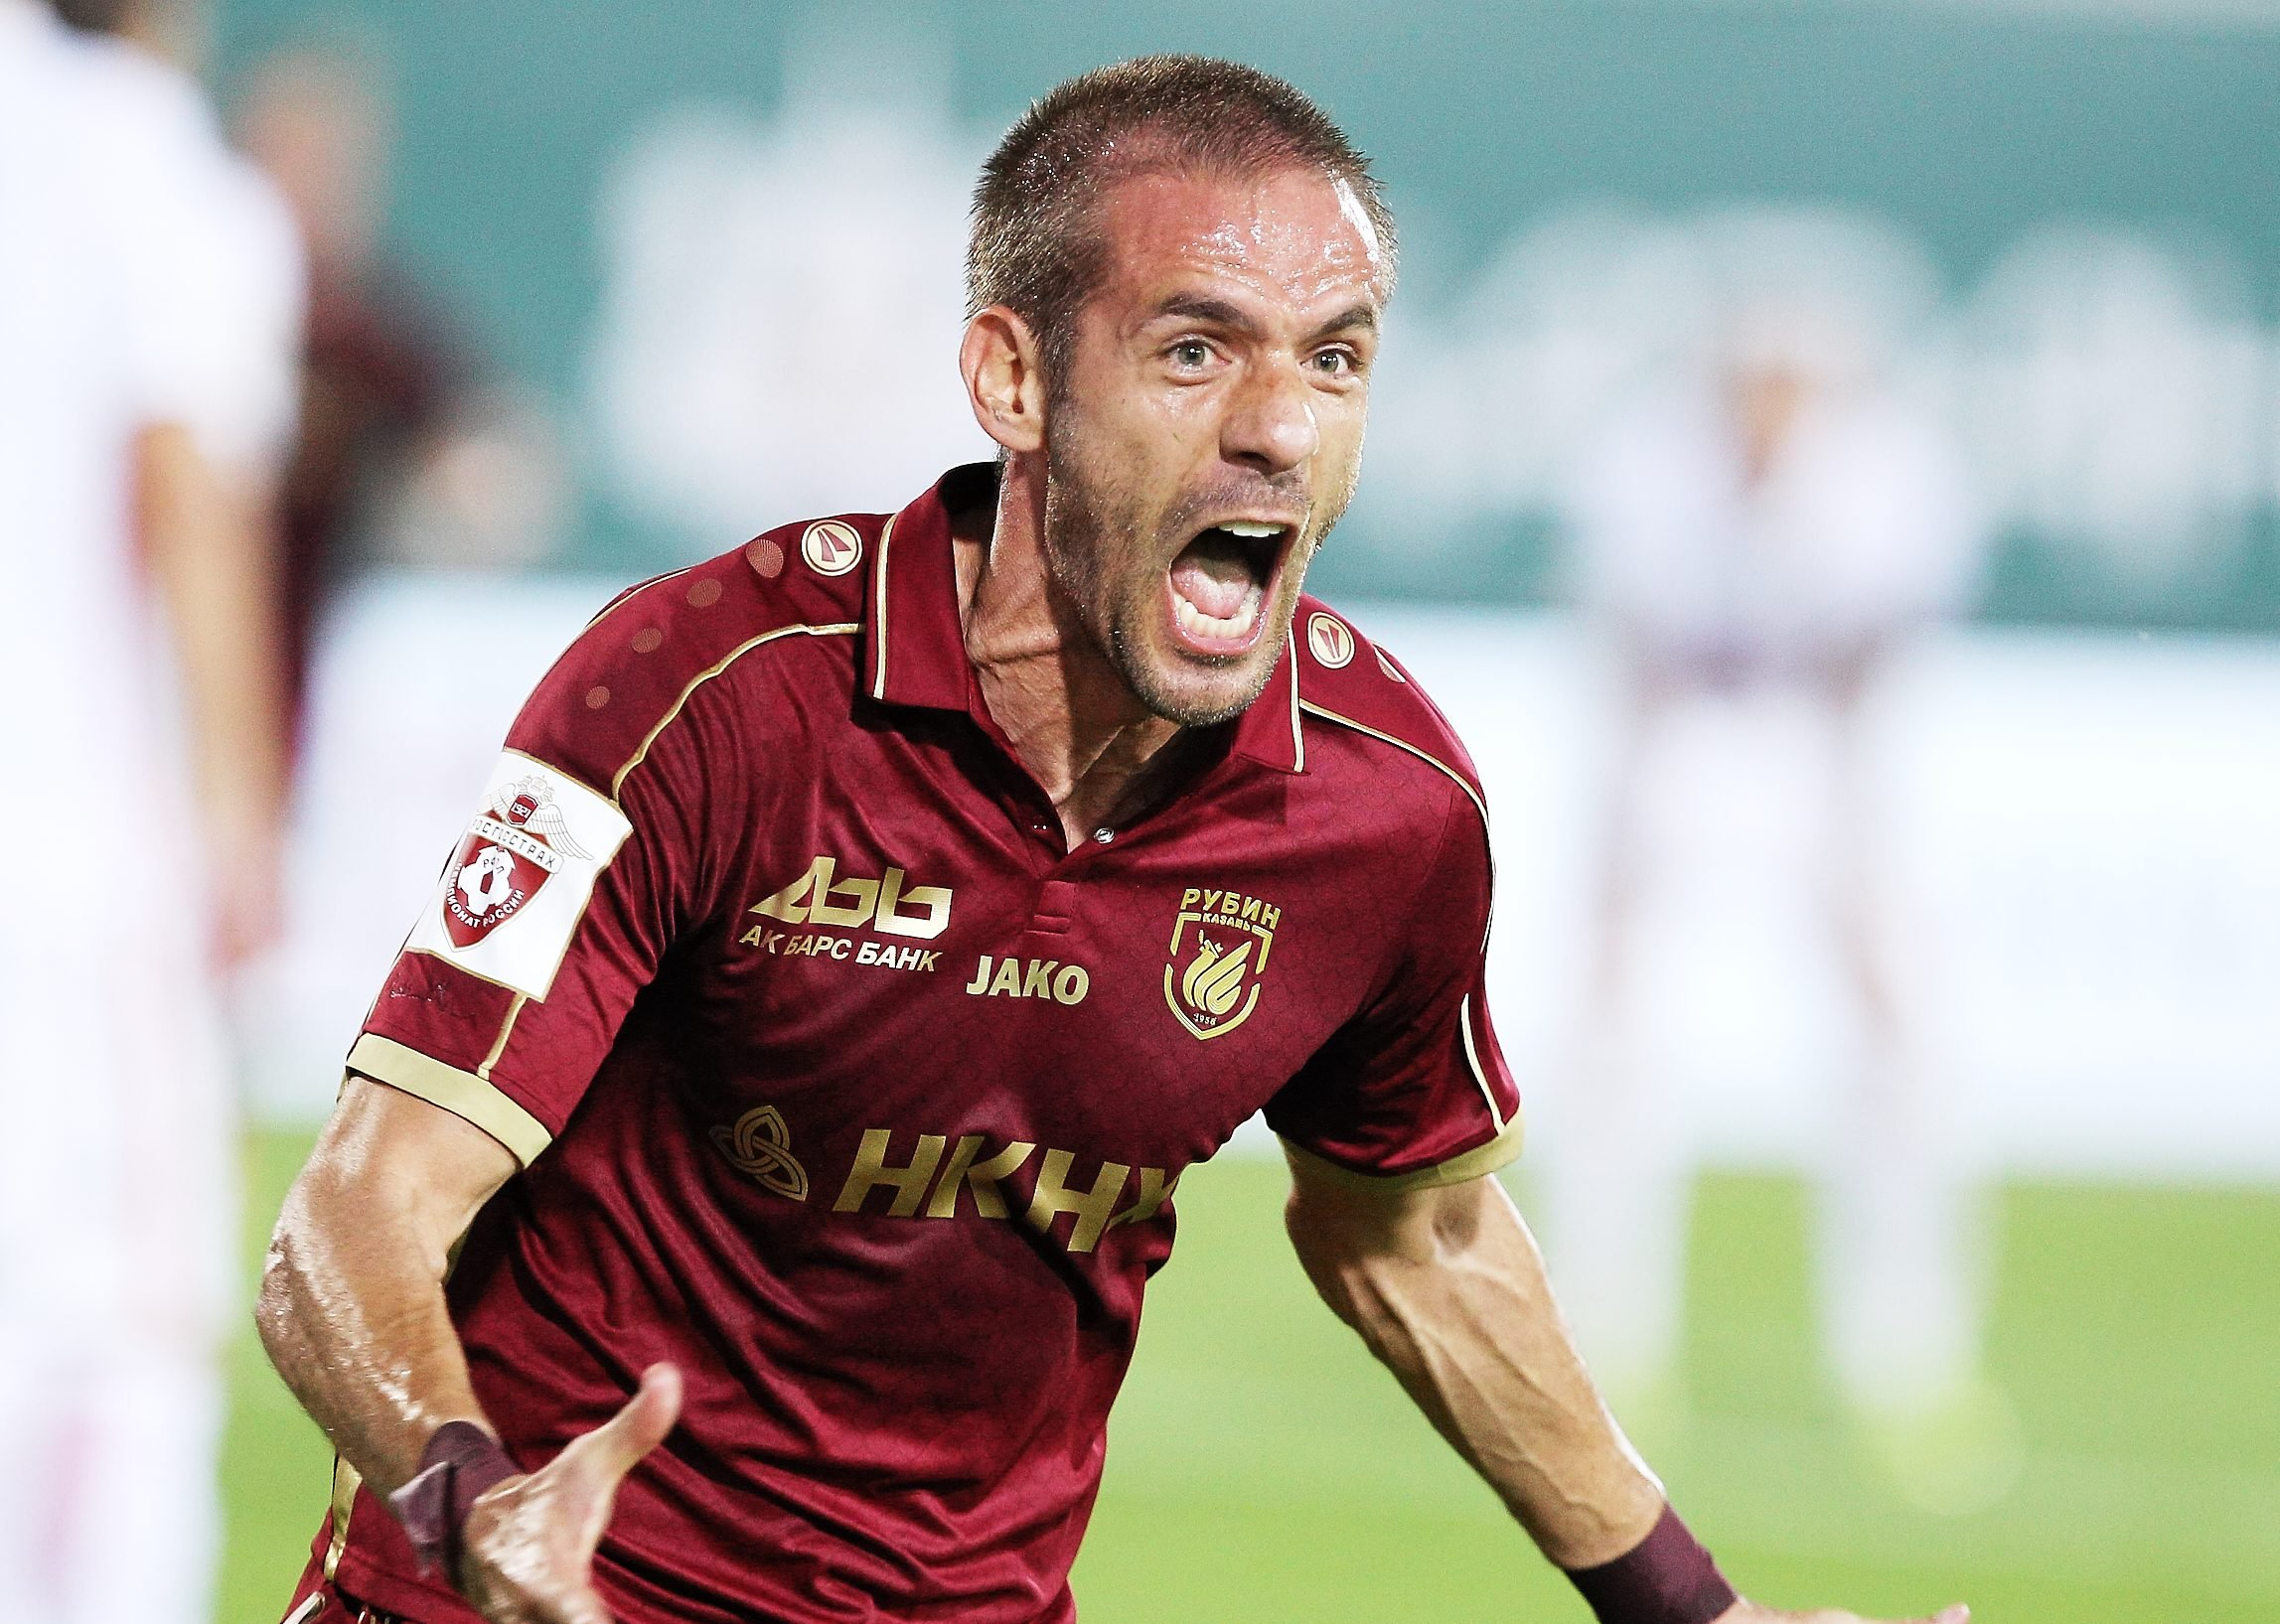 KAZAN, RUSSIA - AUGUST 13: Marko Devic of FC Rubin Kazan celebrates the goal during the Russian Premier League match between FC Rubin Kazan  and FC Spartak Moscow at Tsentralny stadium on August 13, 2016 in Kazan, Russia. (Photo by Epsilon/Getty Images)